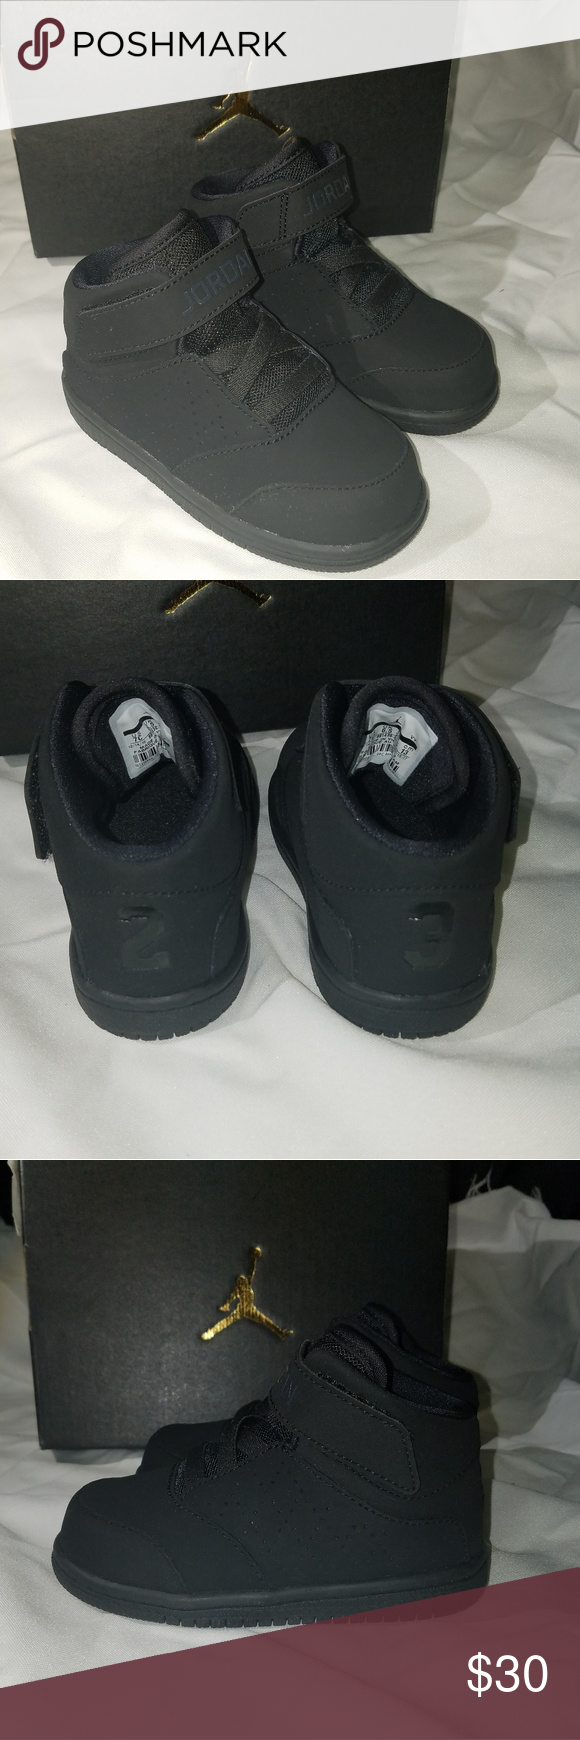 3a8a7568b9c Nike Air Jordan 1 Flight (TD) PS New all black toddler Jordan high top  sneakers with elastic bands shoe strings with strap very simple design easy  to clean ...